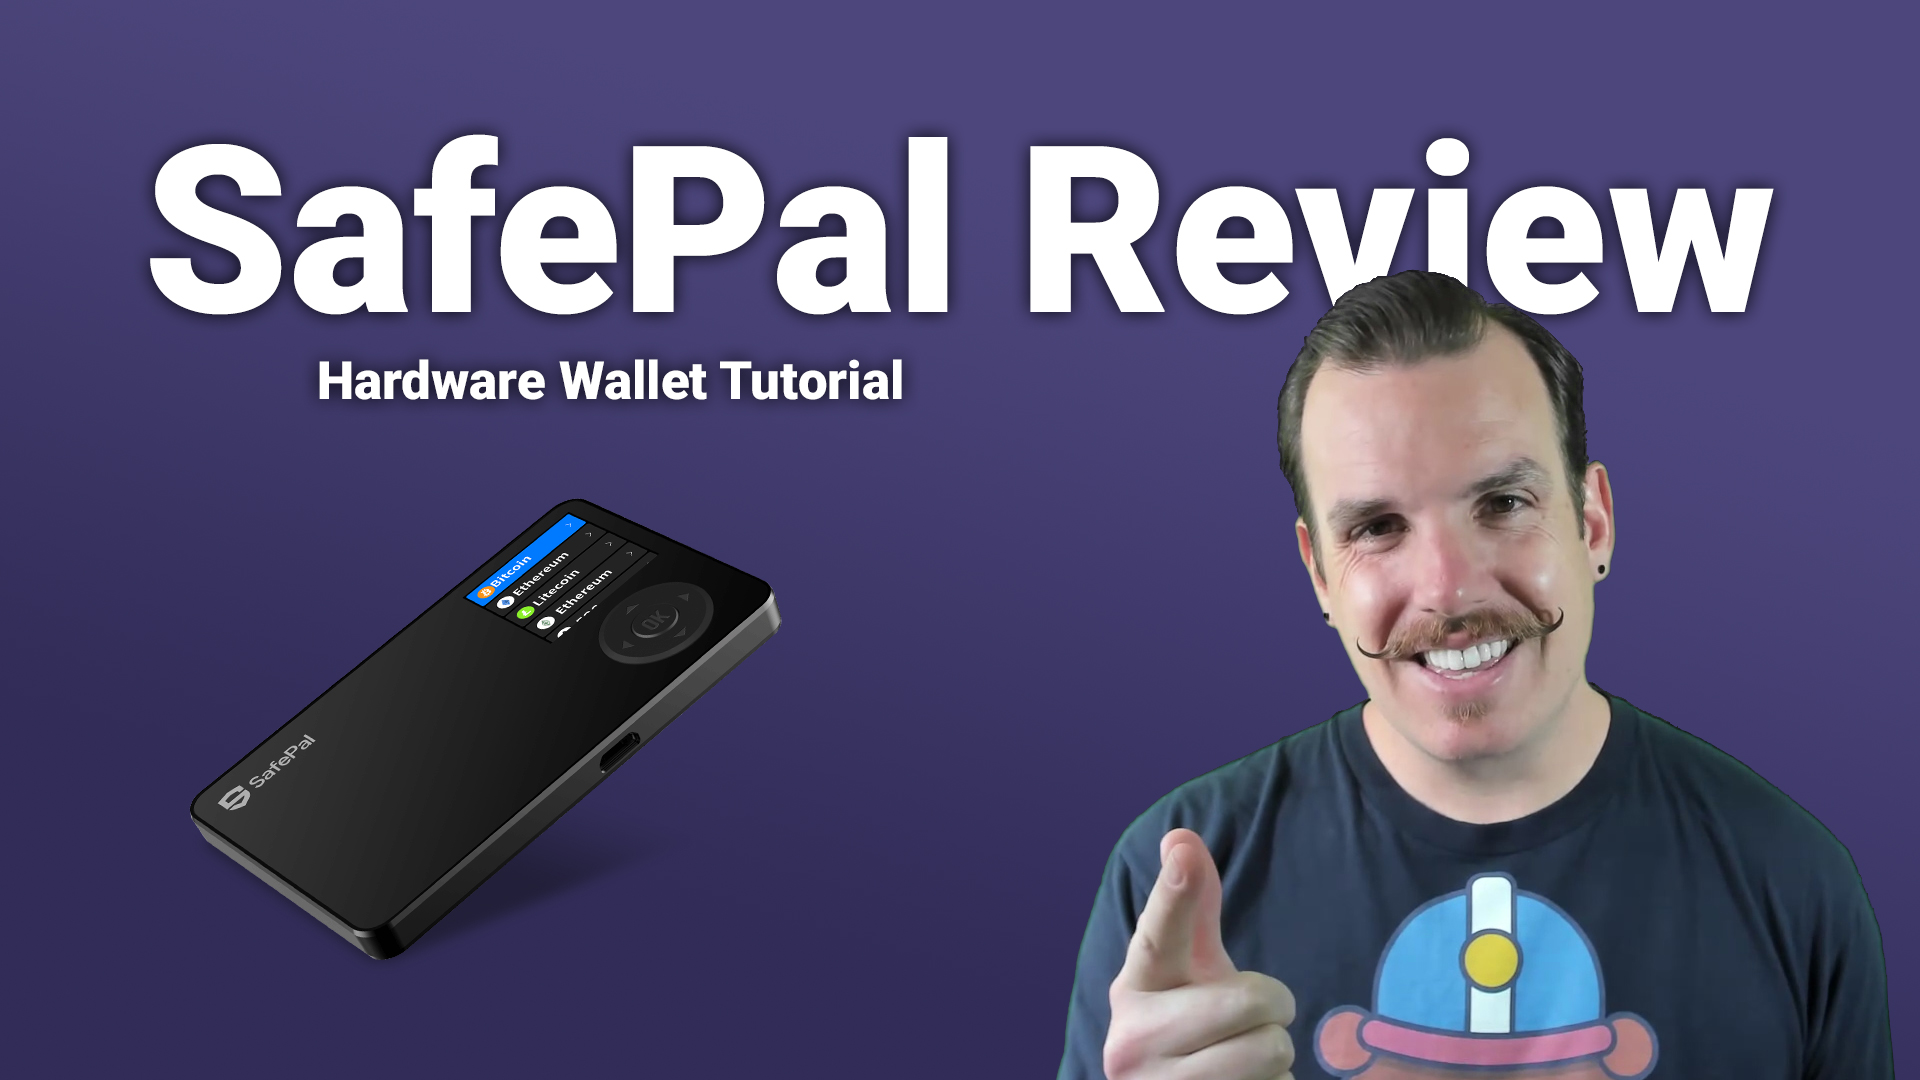 SafePal Hardware Wallet Review